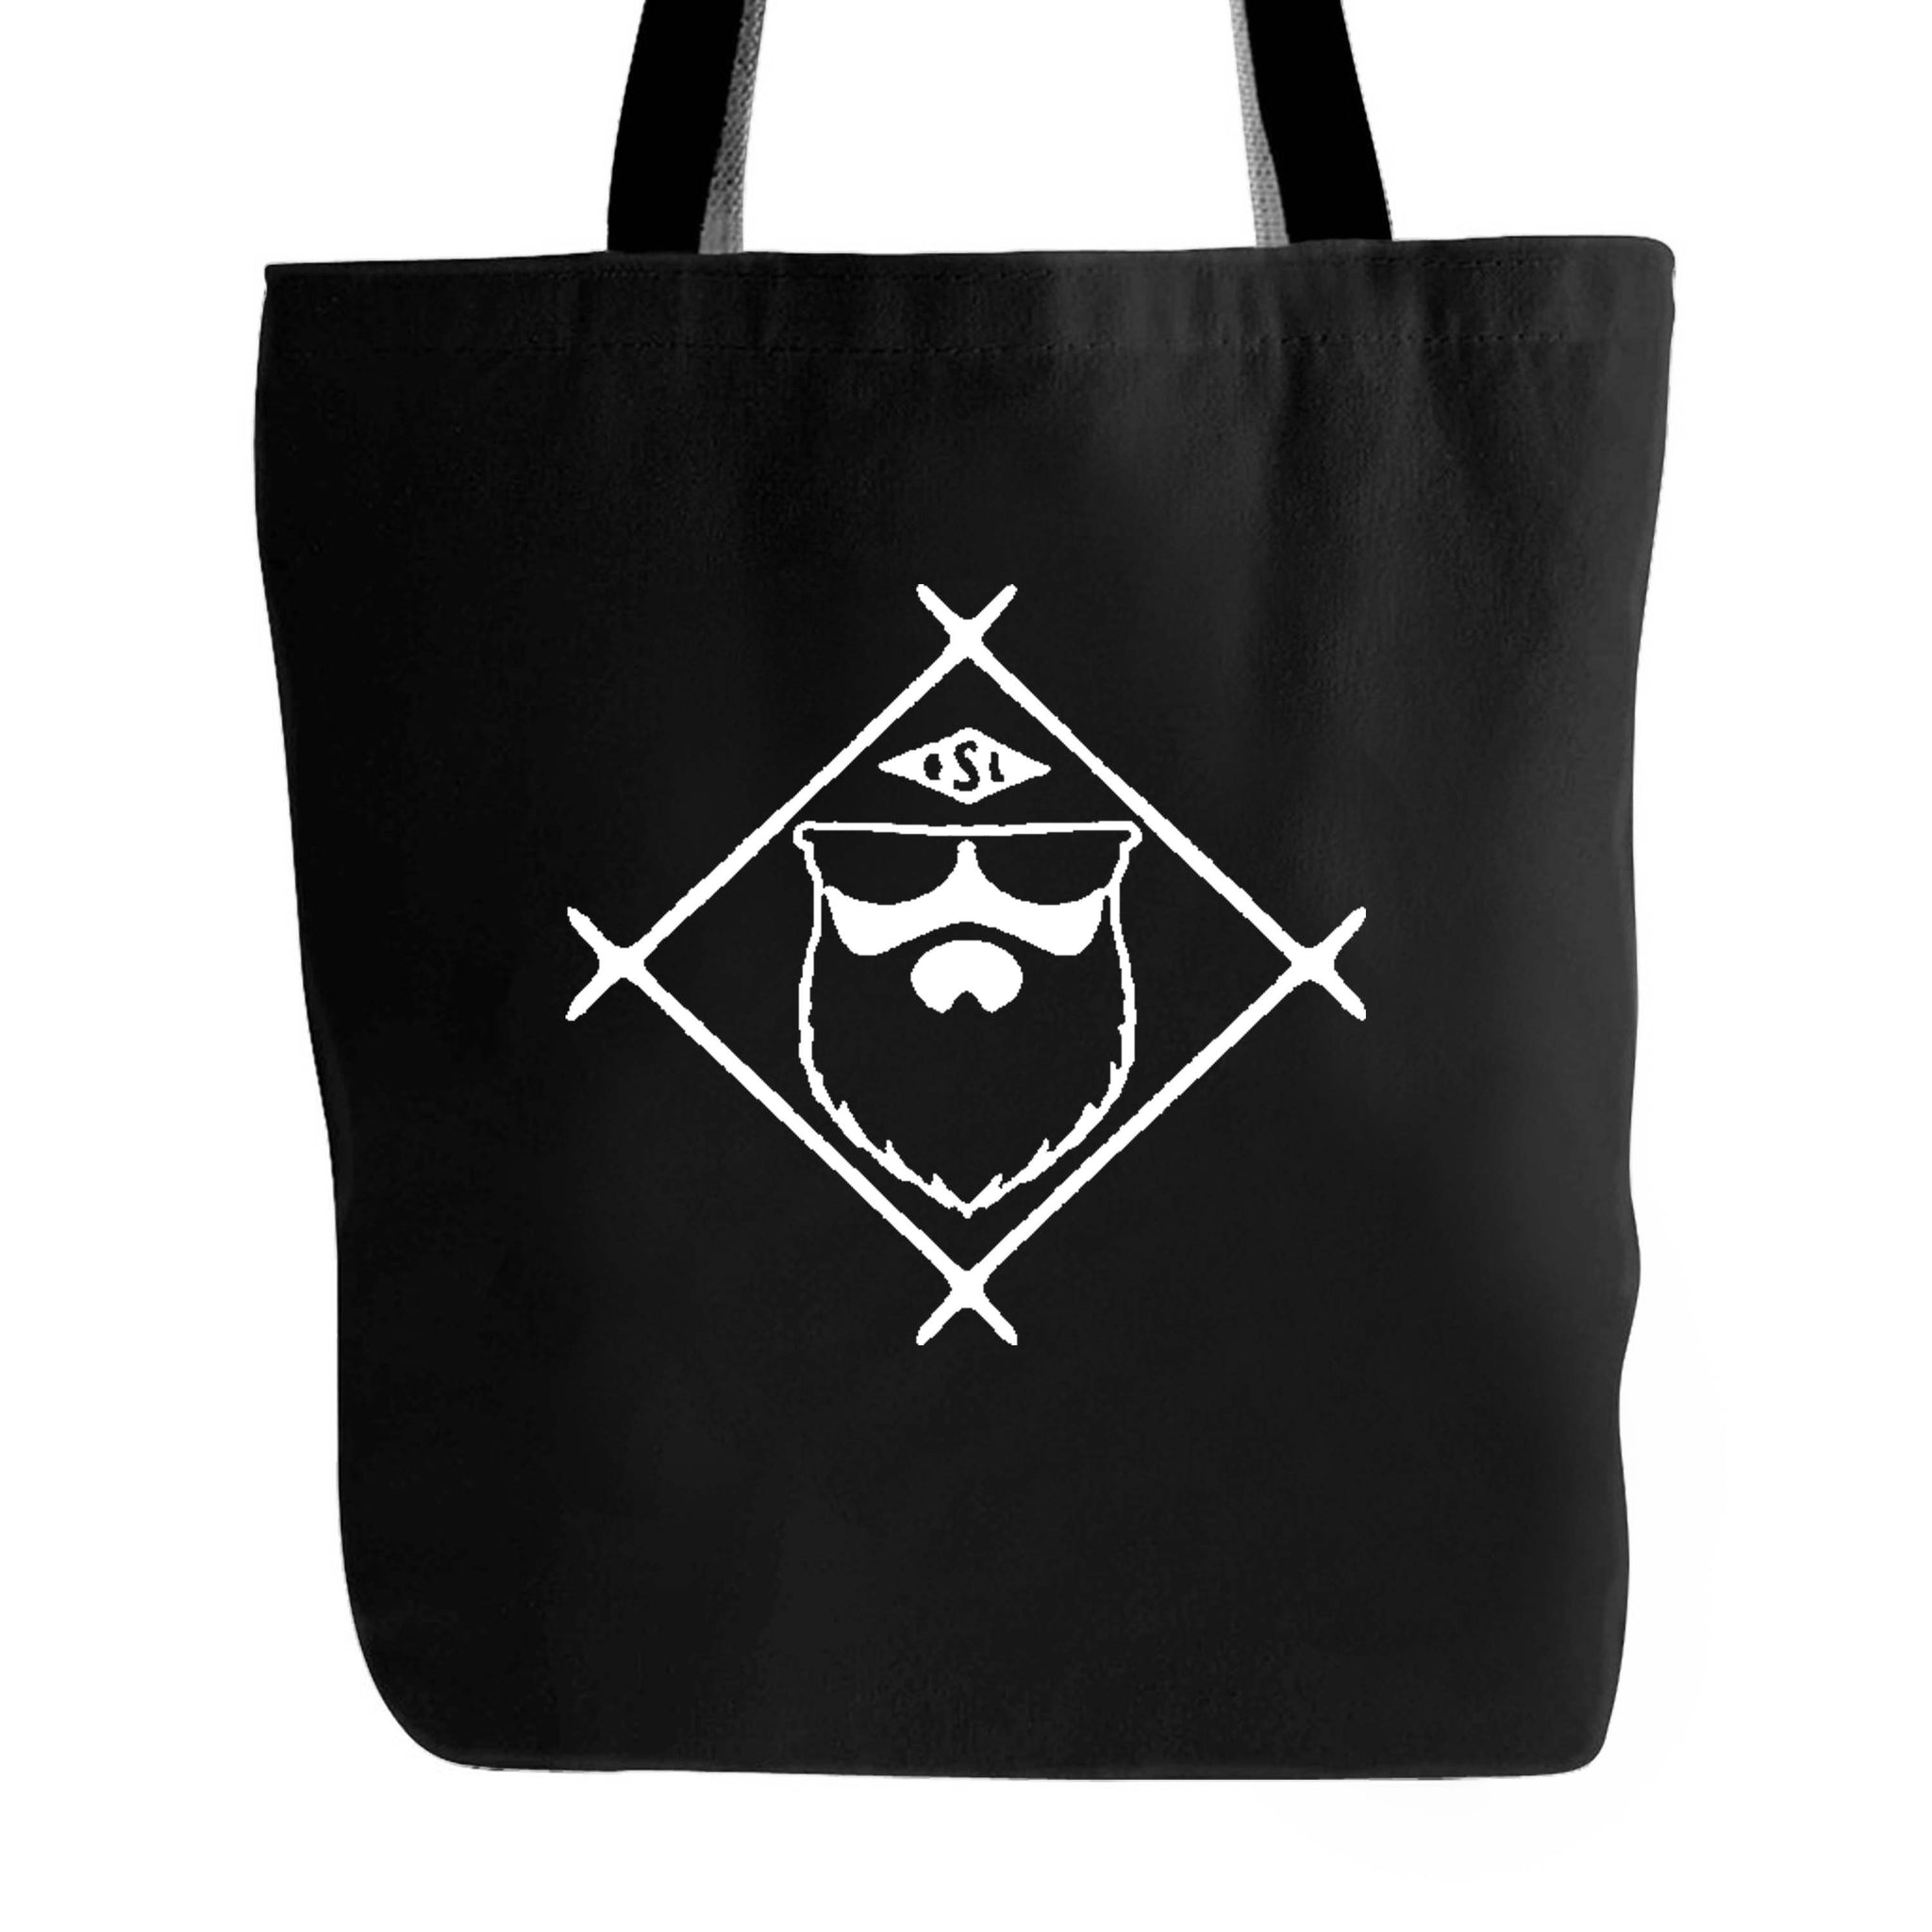 Live Bearded Shave Life Beard Co Brand Tote Bag